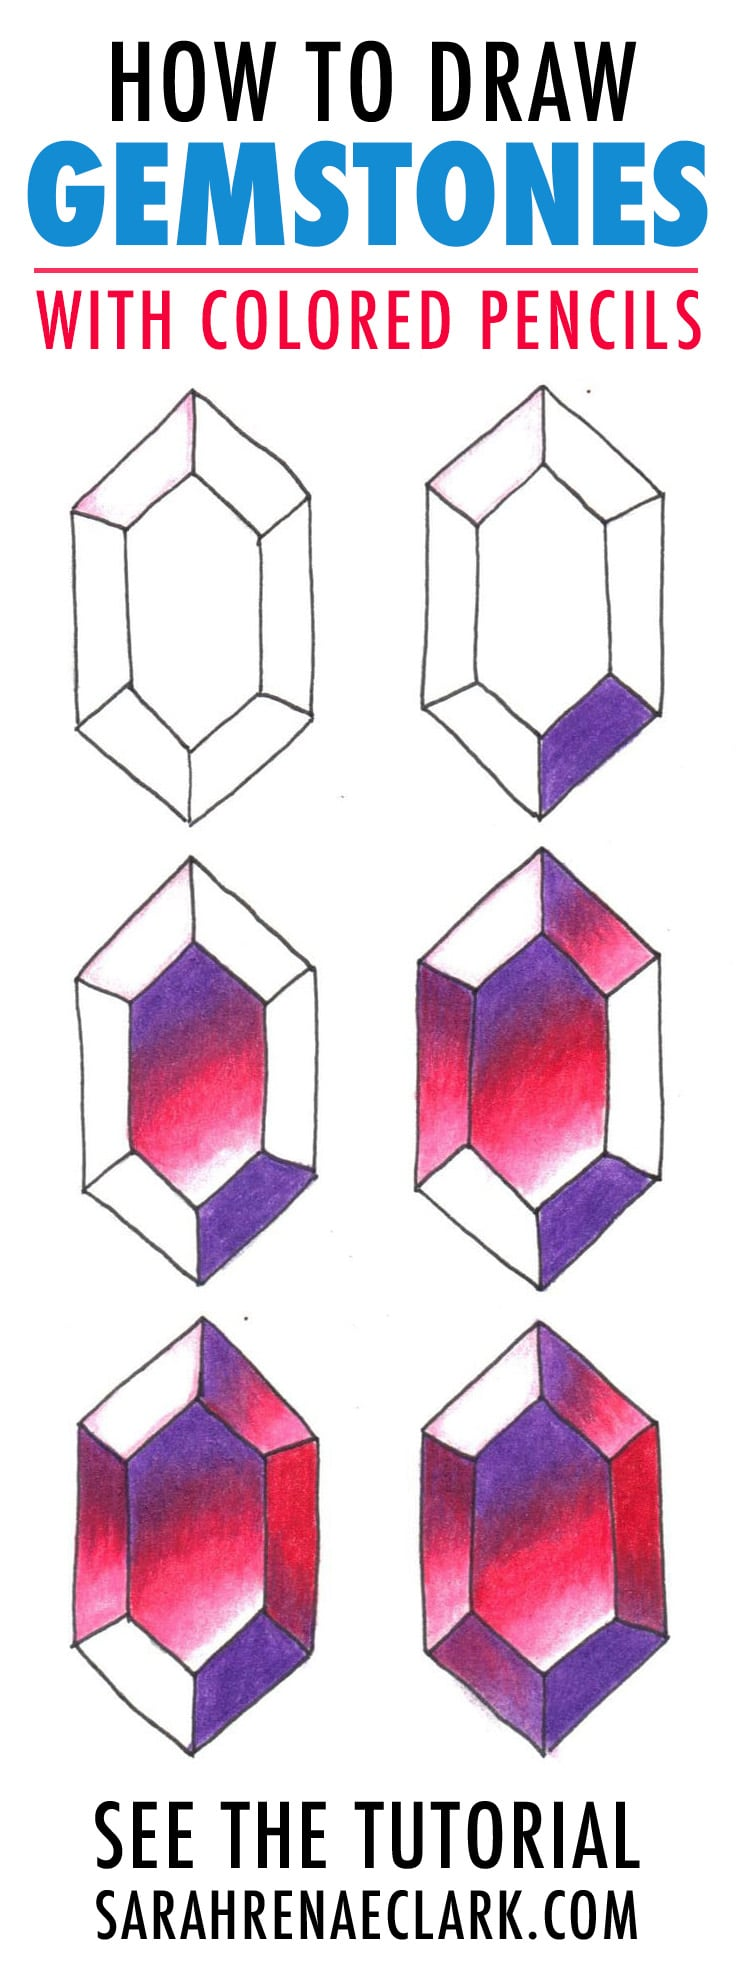 How To Draw Gemstones With Colored Pencils Adult Coloring Tutorial